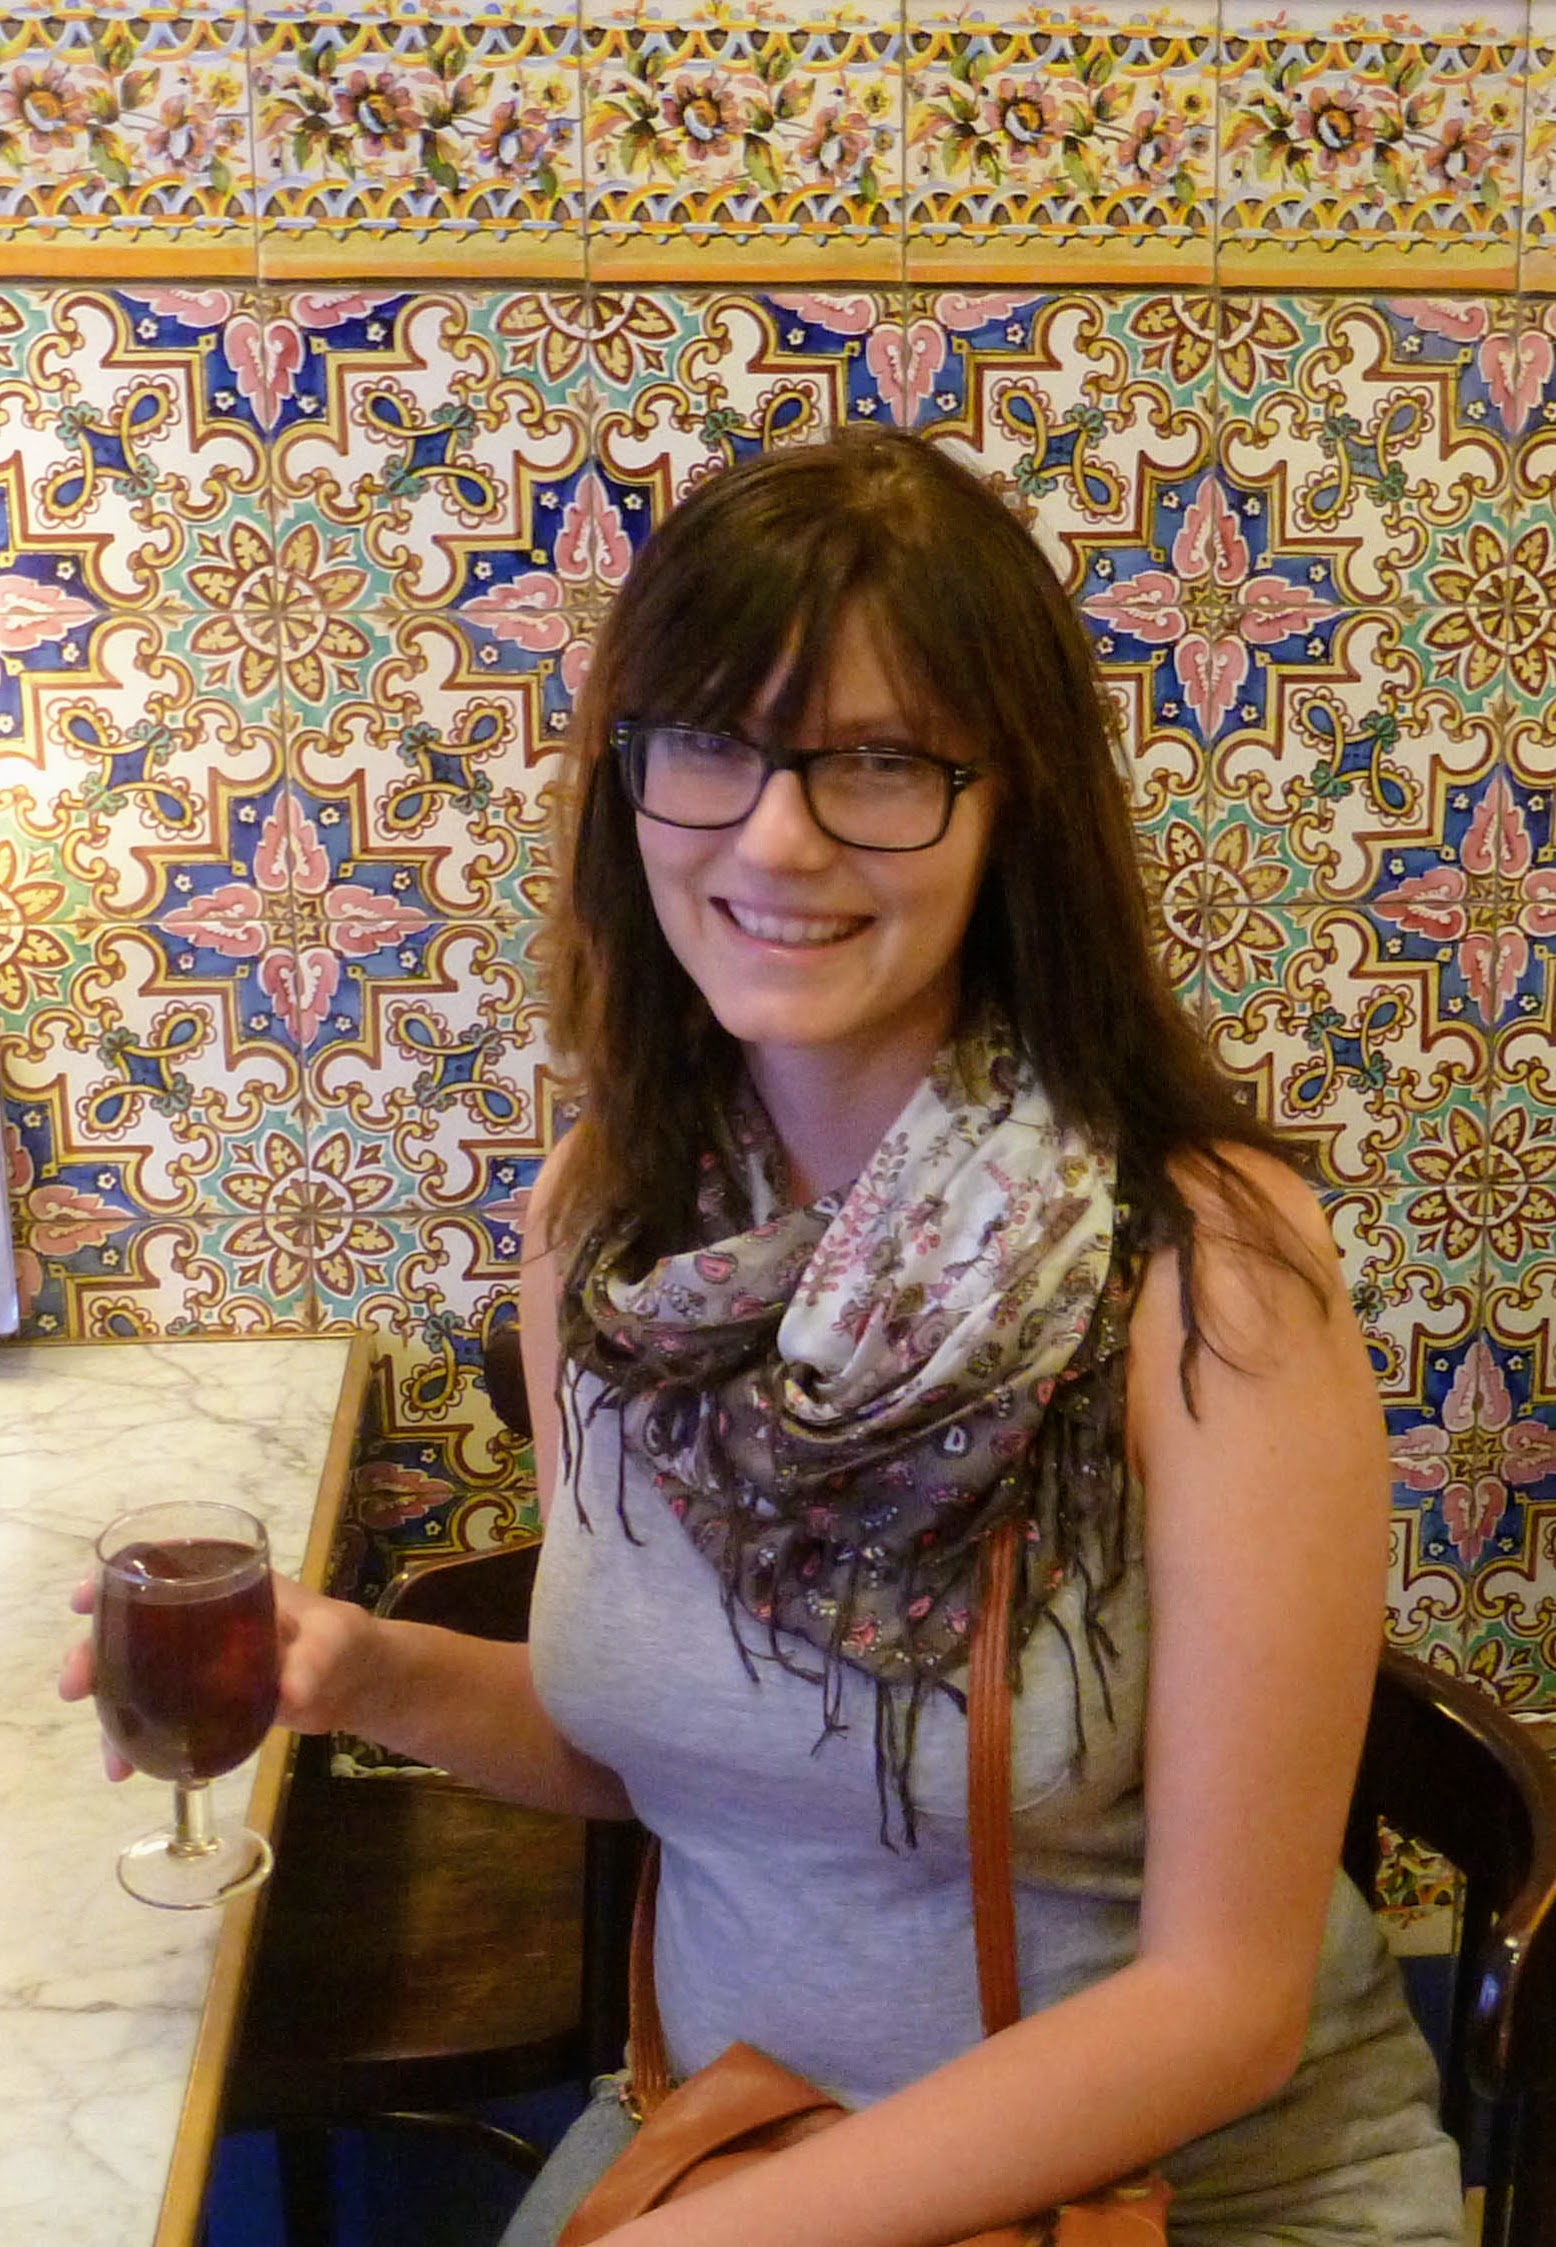 picture of Sam in a cafe drinking sangria